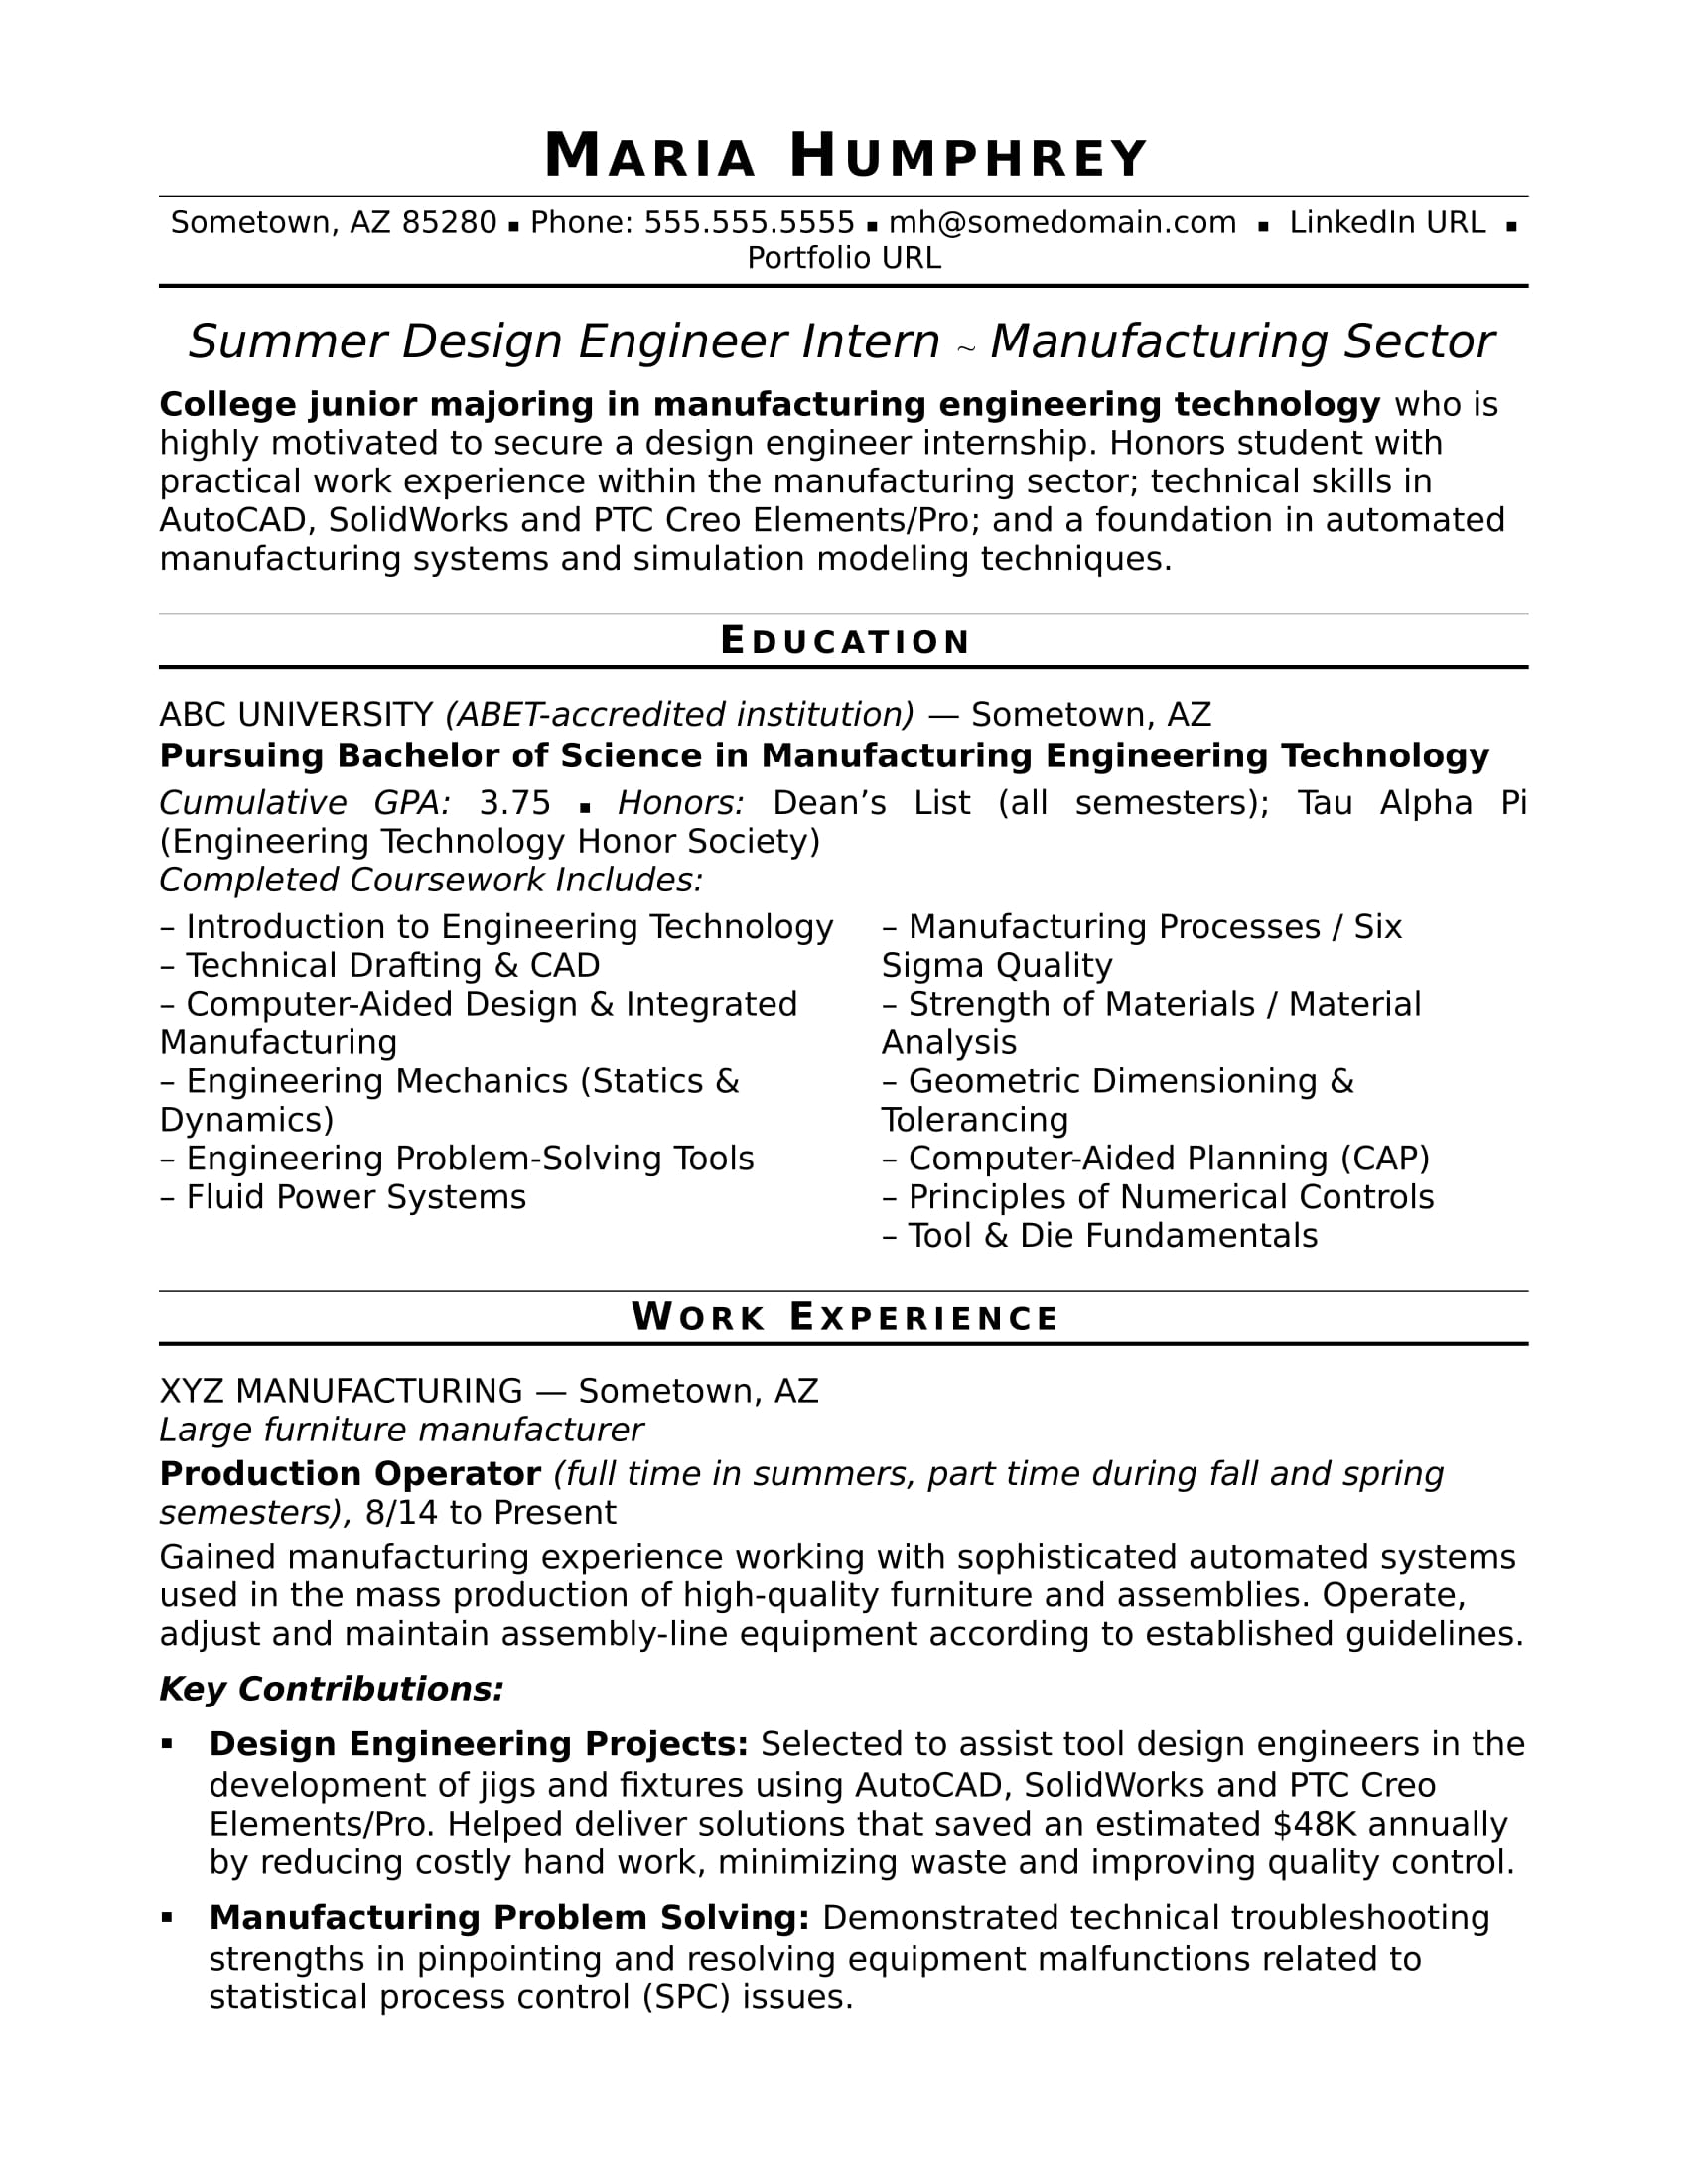 sample resume for an entry level design engineer monster engineering student examples Resume Engineering Student Resume Examples